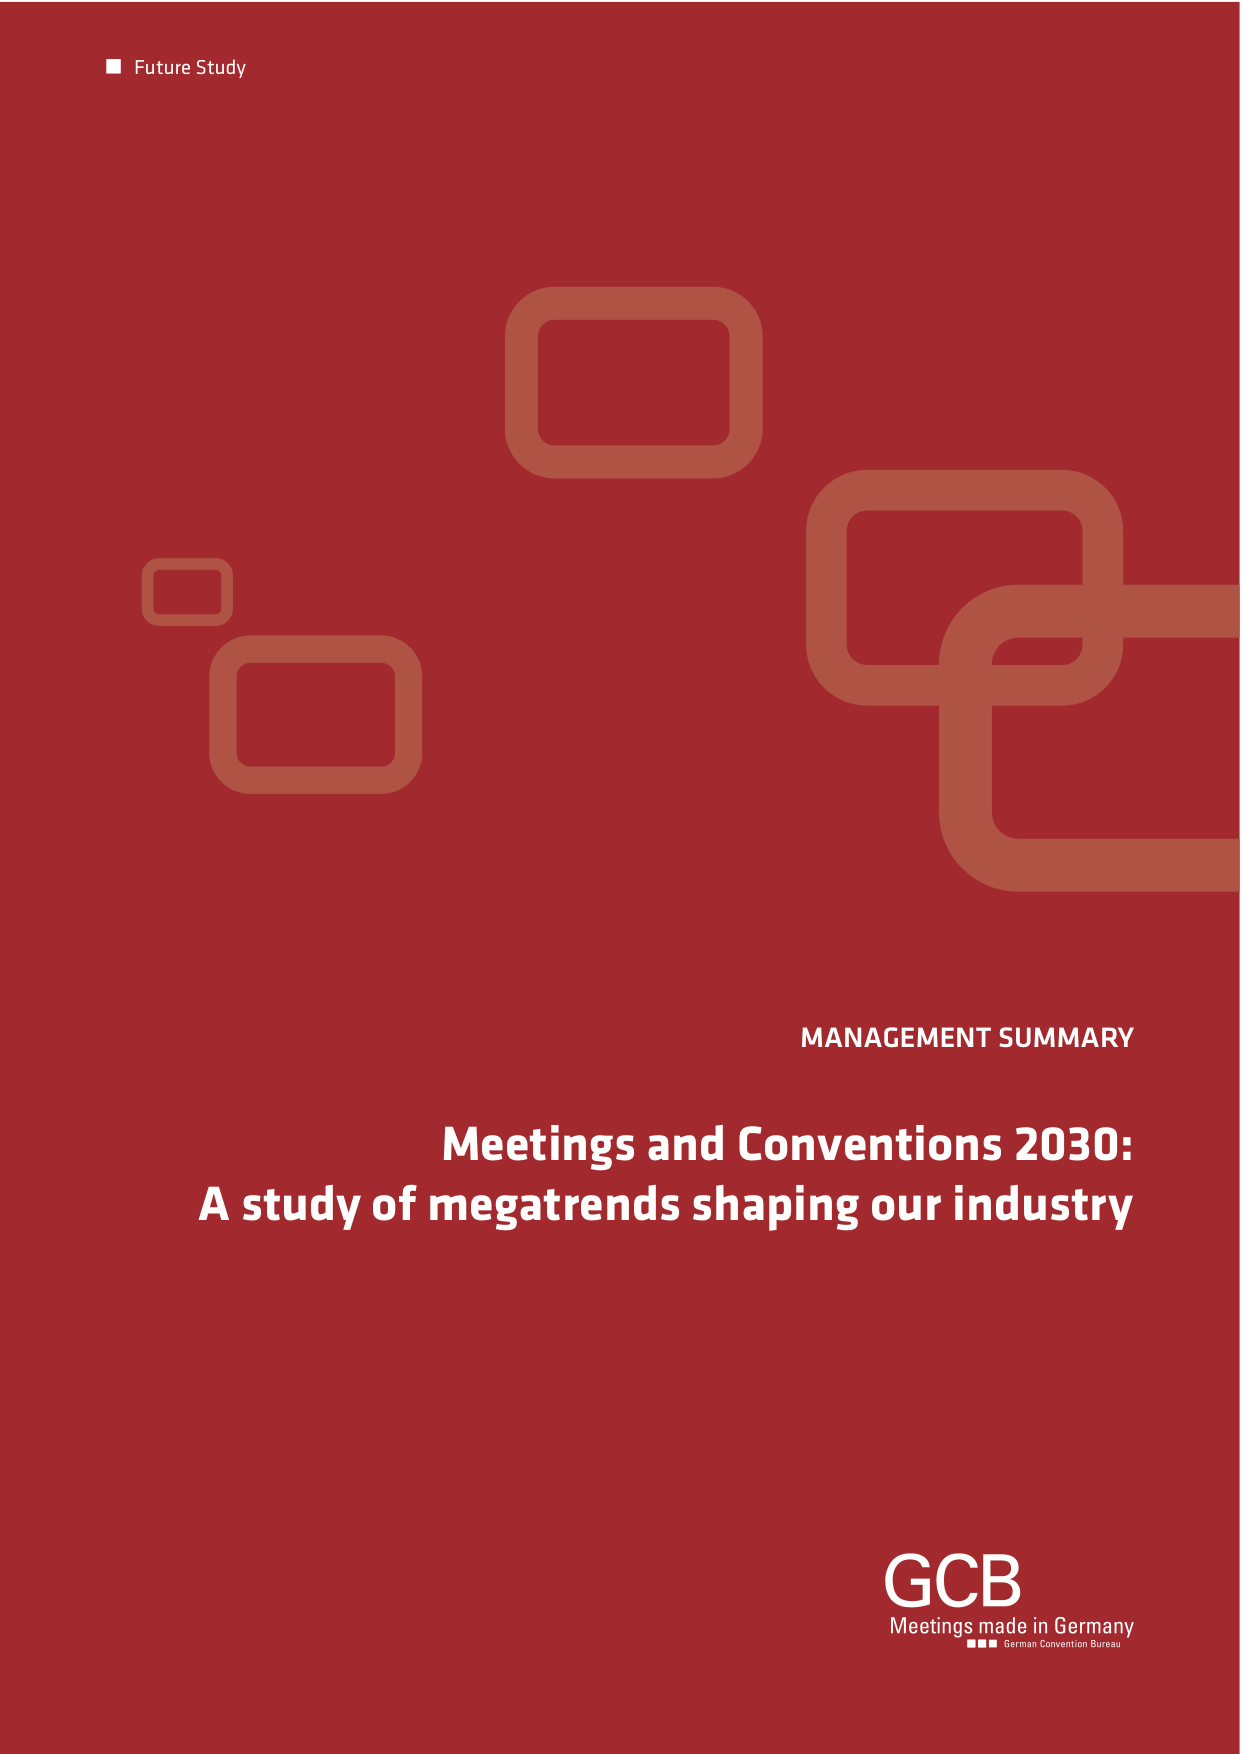 A study of megatrends shaping our industry